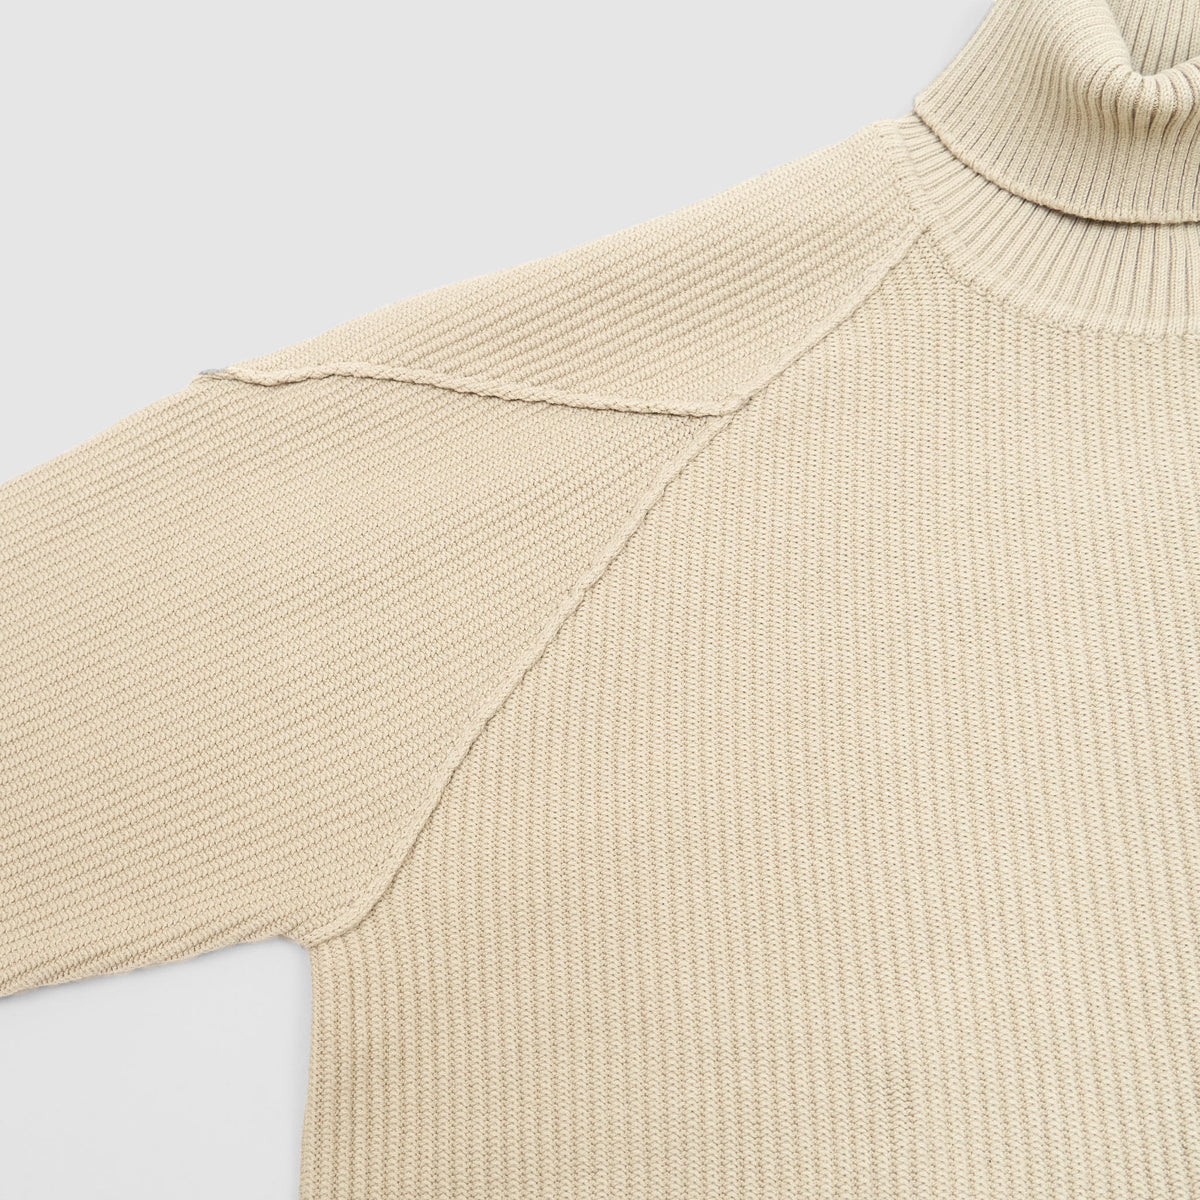 Stone Island Ghost Piece Knitted Cotton Blend Roll Neck Pullover